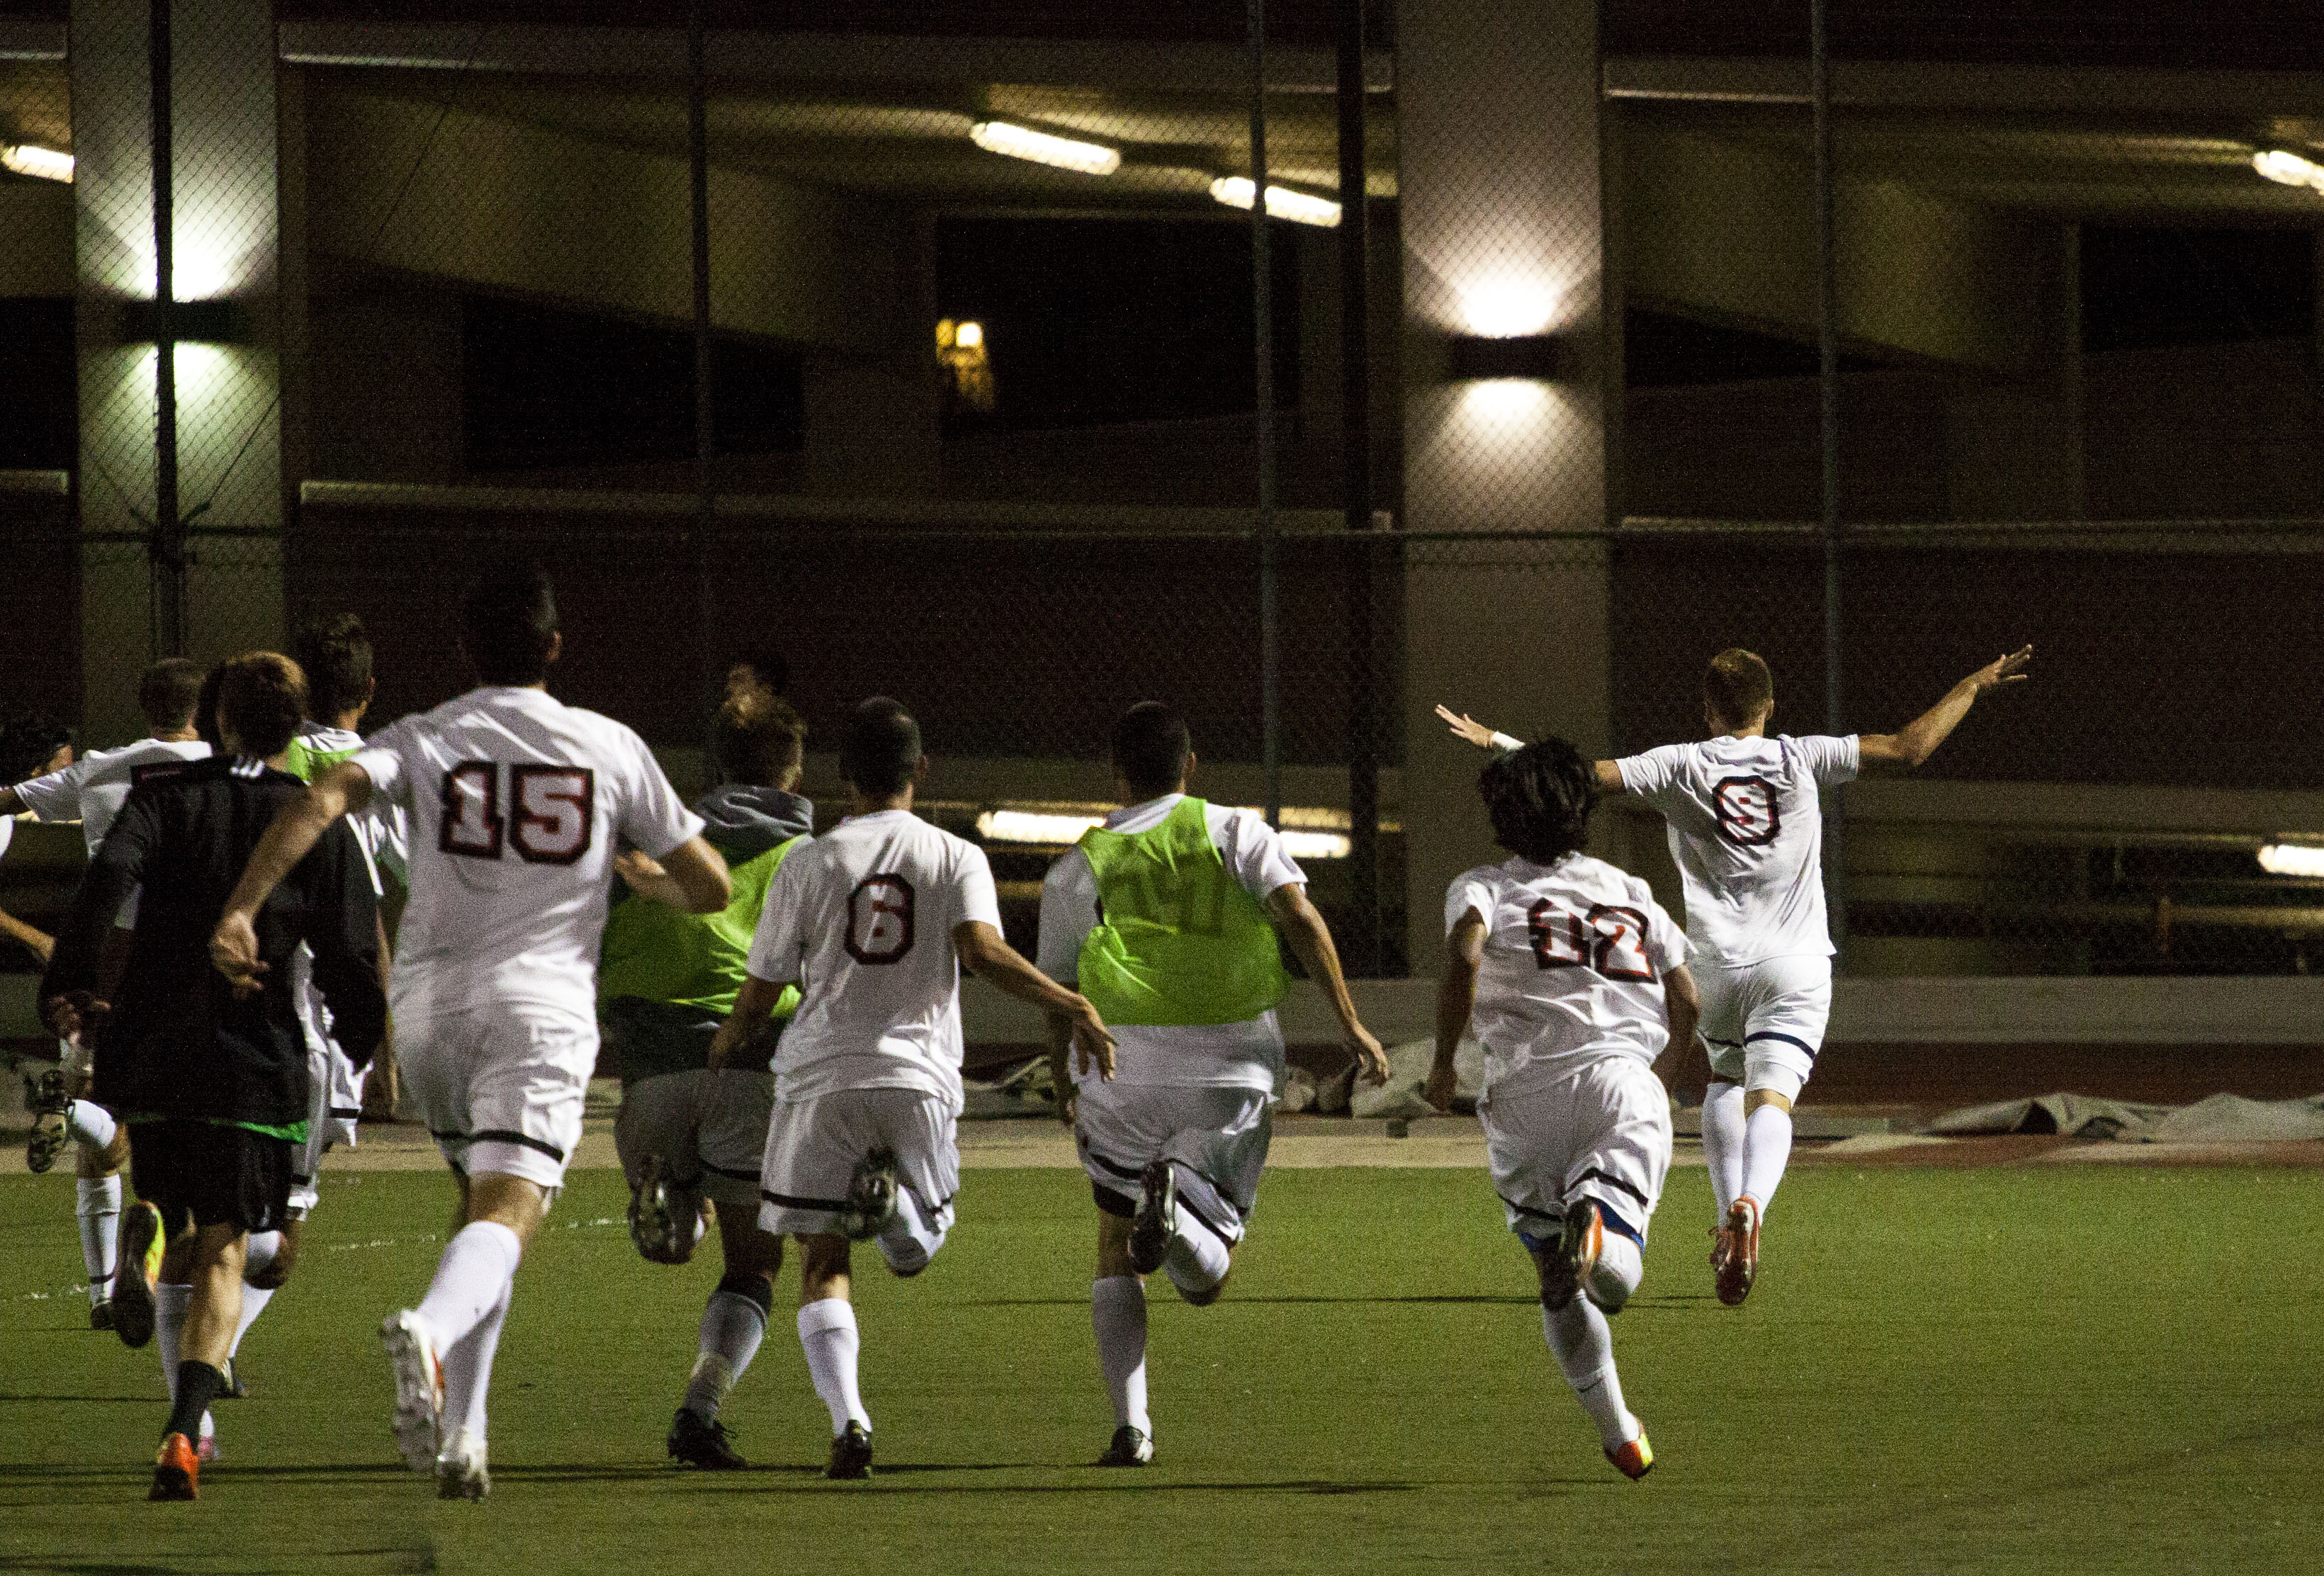 Eagles win overtime thriller against APU